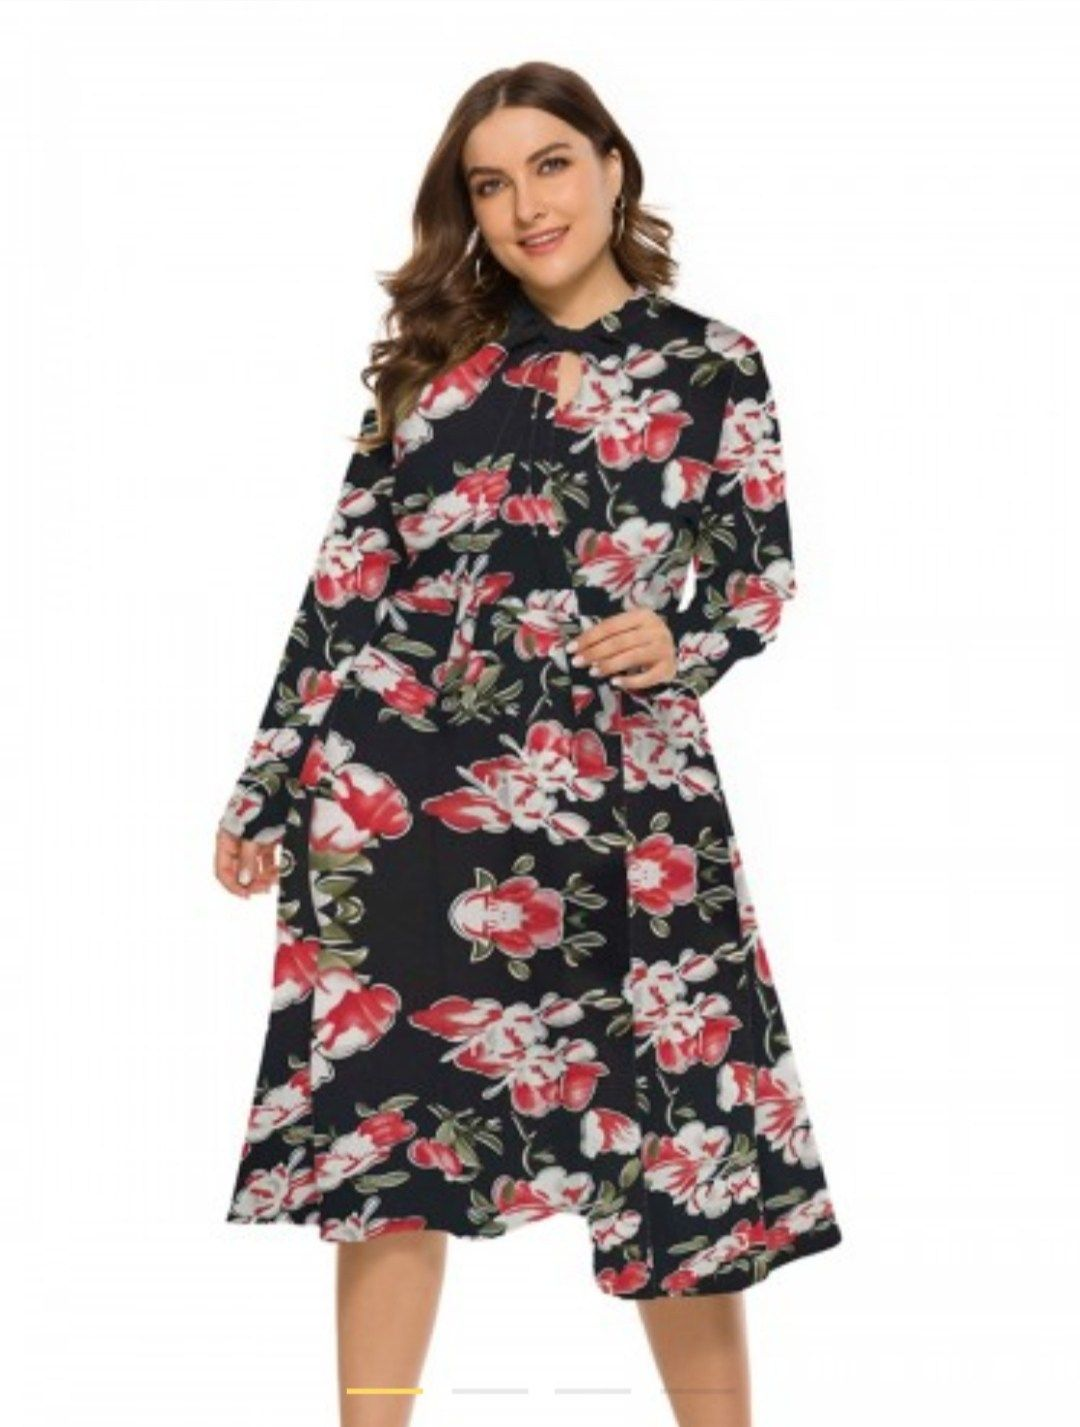 Mother's day gift guide for plus size fashionable women  #mother'sdayoutfit #mother'sdayoutfitideas #summeroutfitidea #plussizeclothing #plussizefashion #womenfashion #sexyplussizeoutfit #plussizedresses #printplussizedress